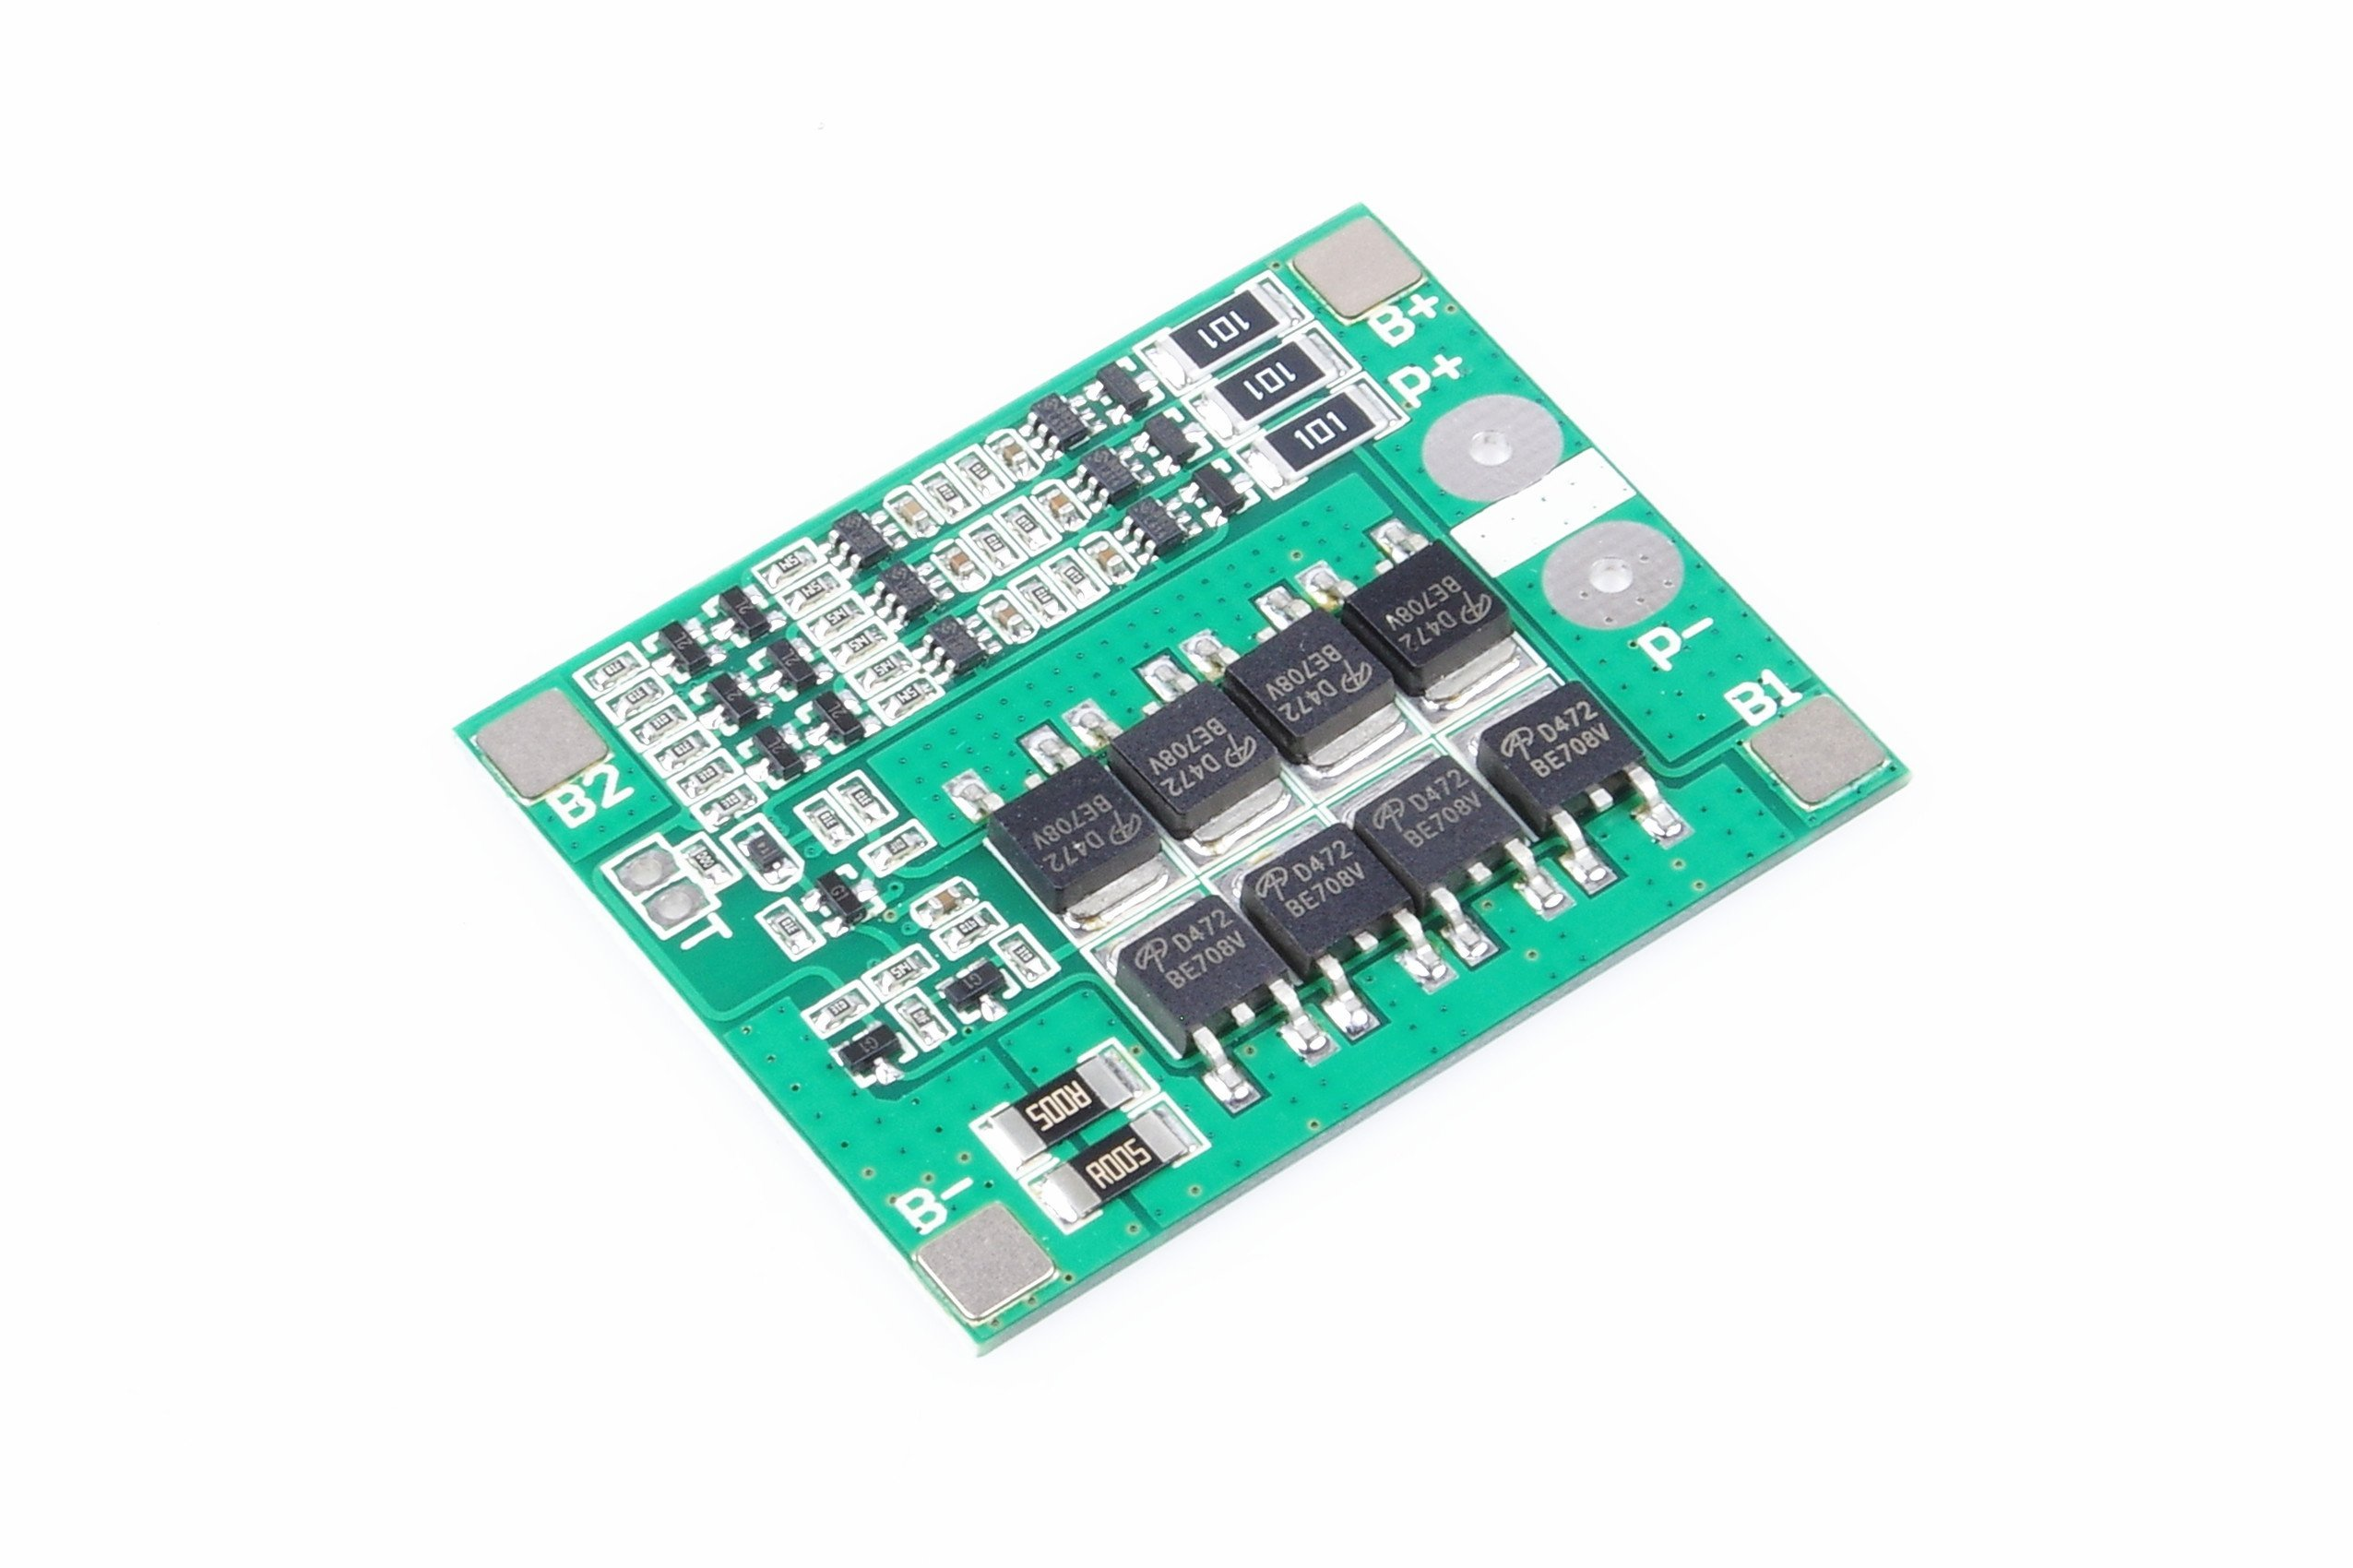 3S 12.6V 25A 18650 Lithium Battery Protection Board 11.1V 12.6V High Current With Balanced Circuit Over Charge Over Discharge Over Current And Short Circuit Protection Function